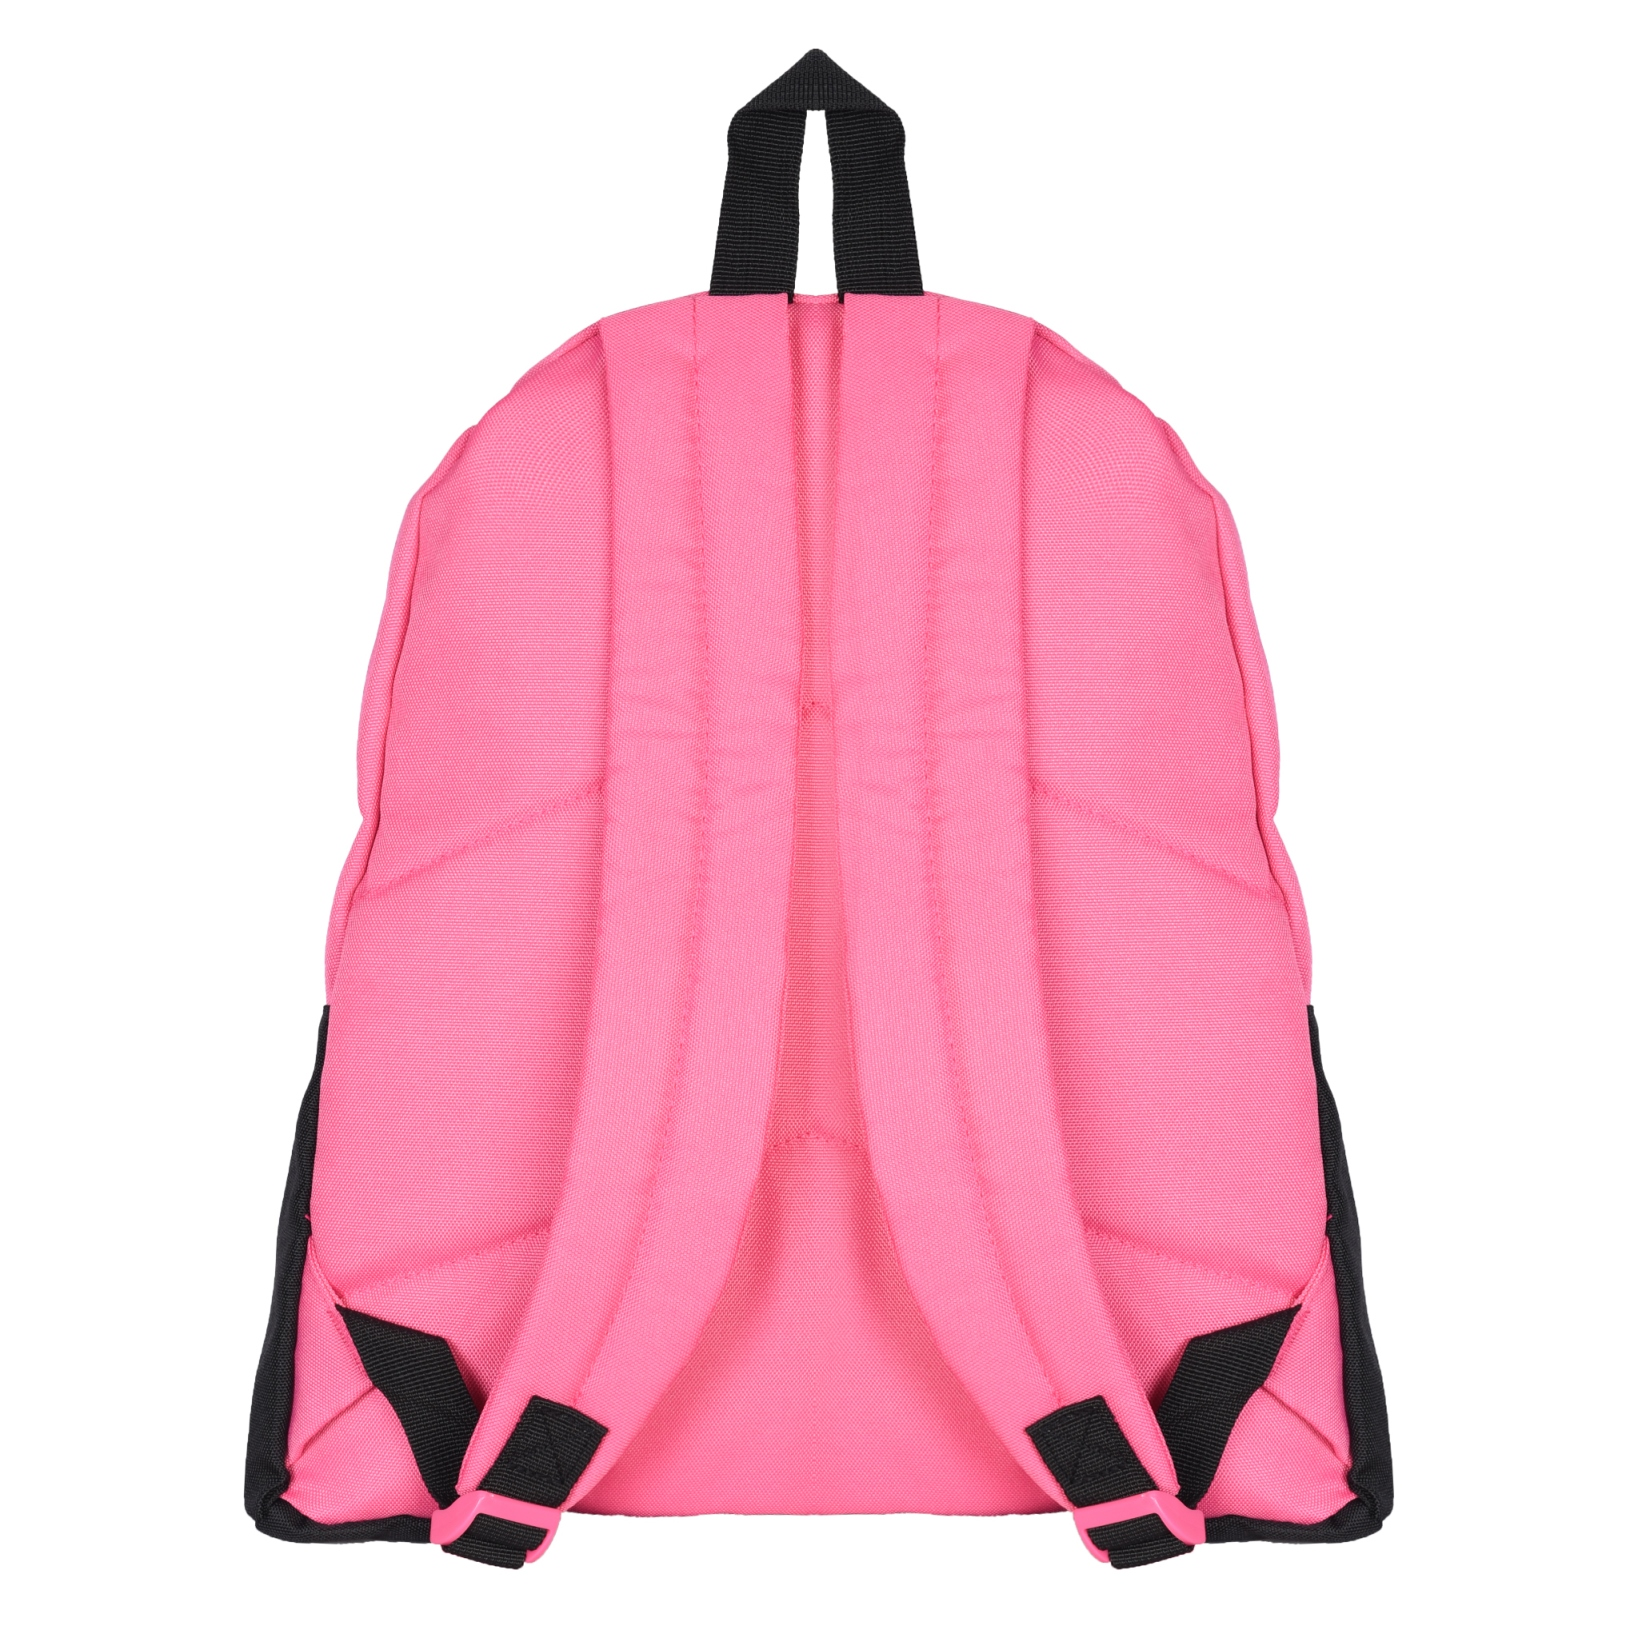 ae4b43e1026a Converse Children s Backpack 38 Cm 14 Liters Mod Pink for sale ...